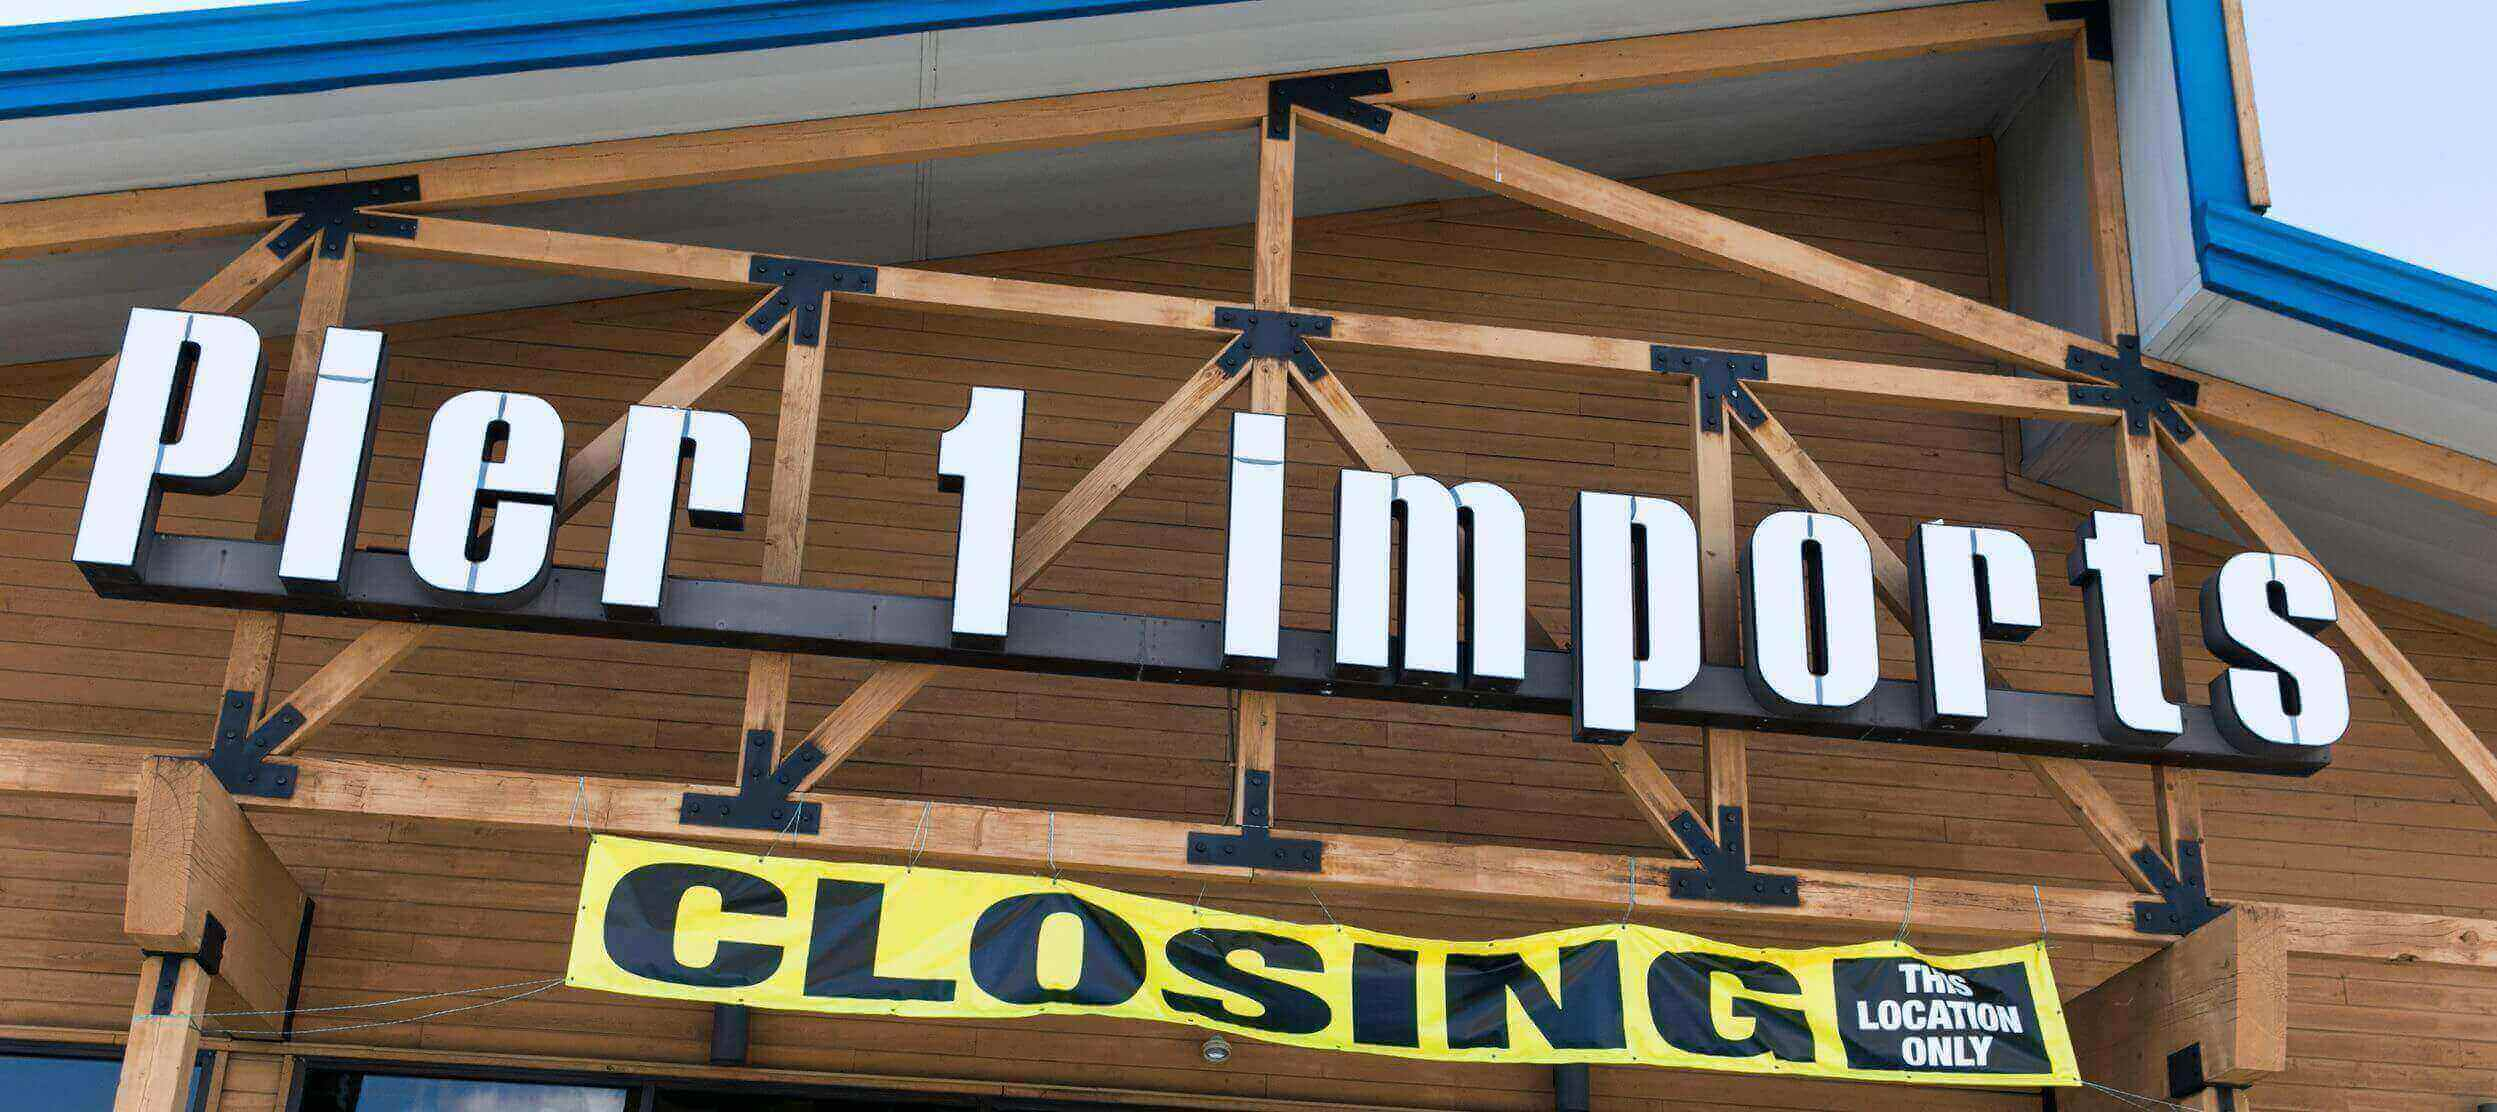 Pier 1 Imports, With Store in Springfield, to Close Permanently as Pandemic Scuttles Buyer